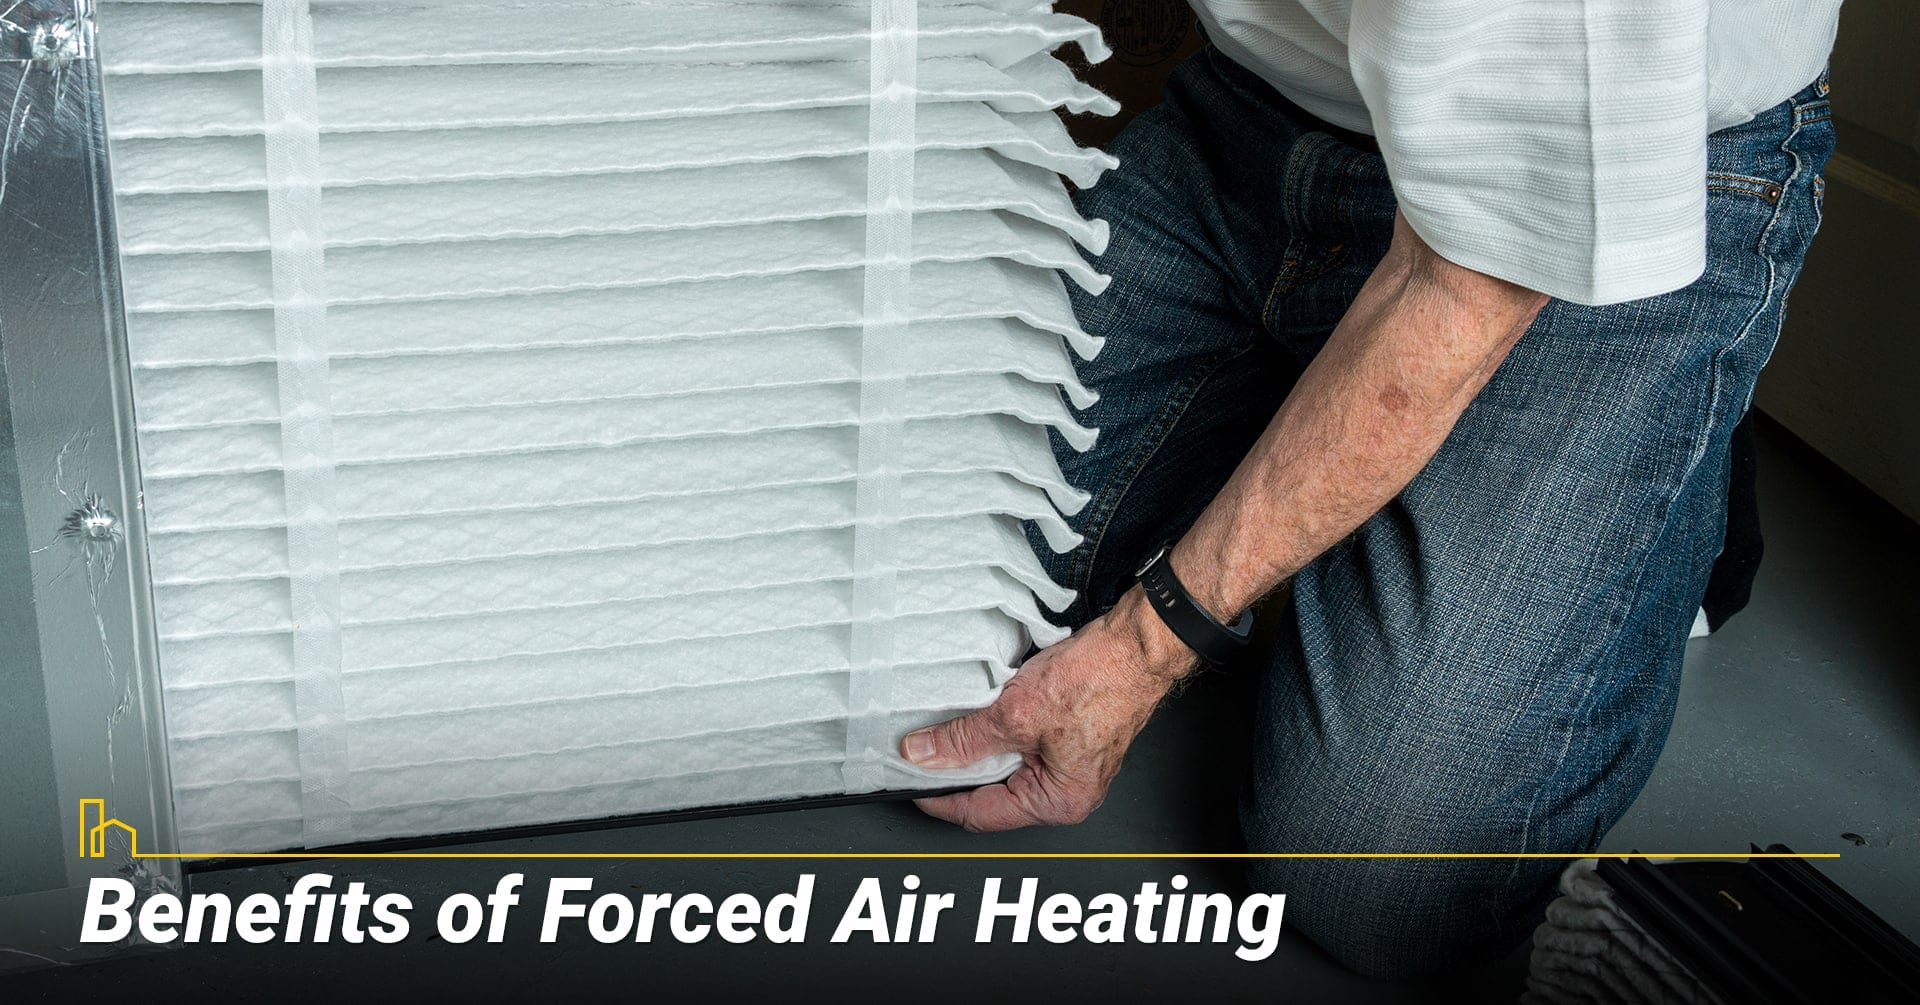 Benefits of Forced Air Heating, the upside of forced air system